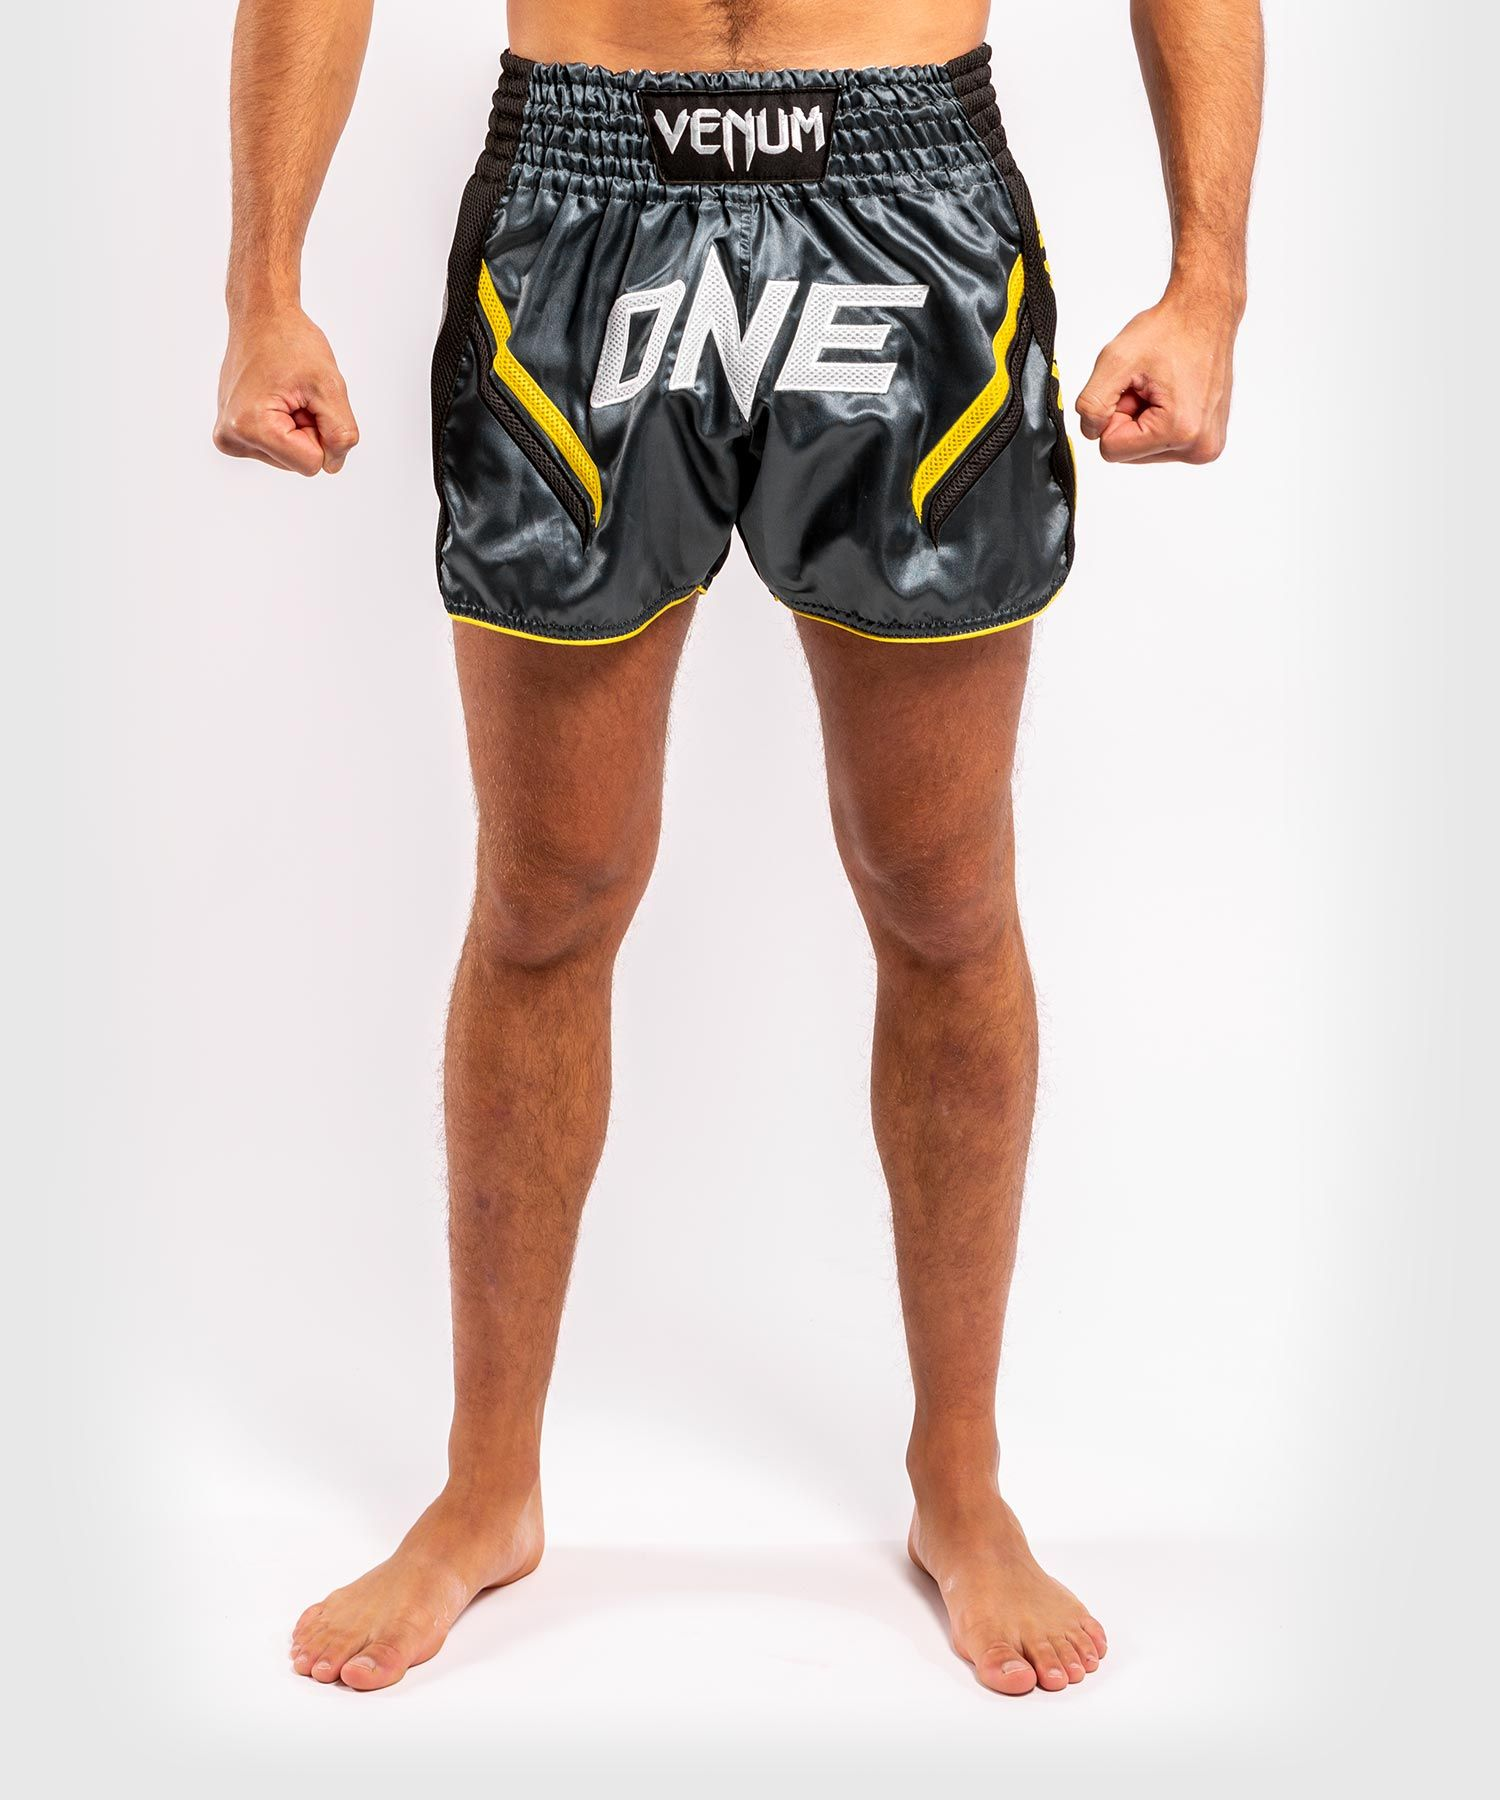 Venum ONE FC Impact Muay Thai Shorts - Grey/Black